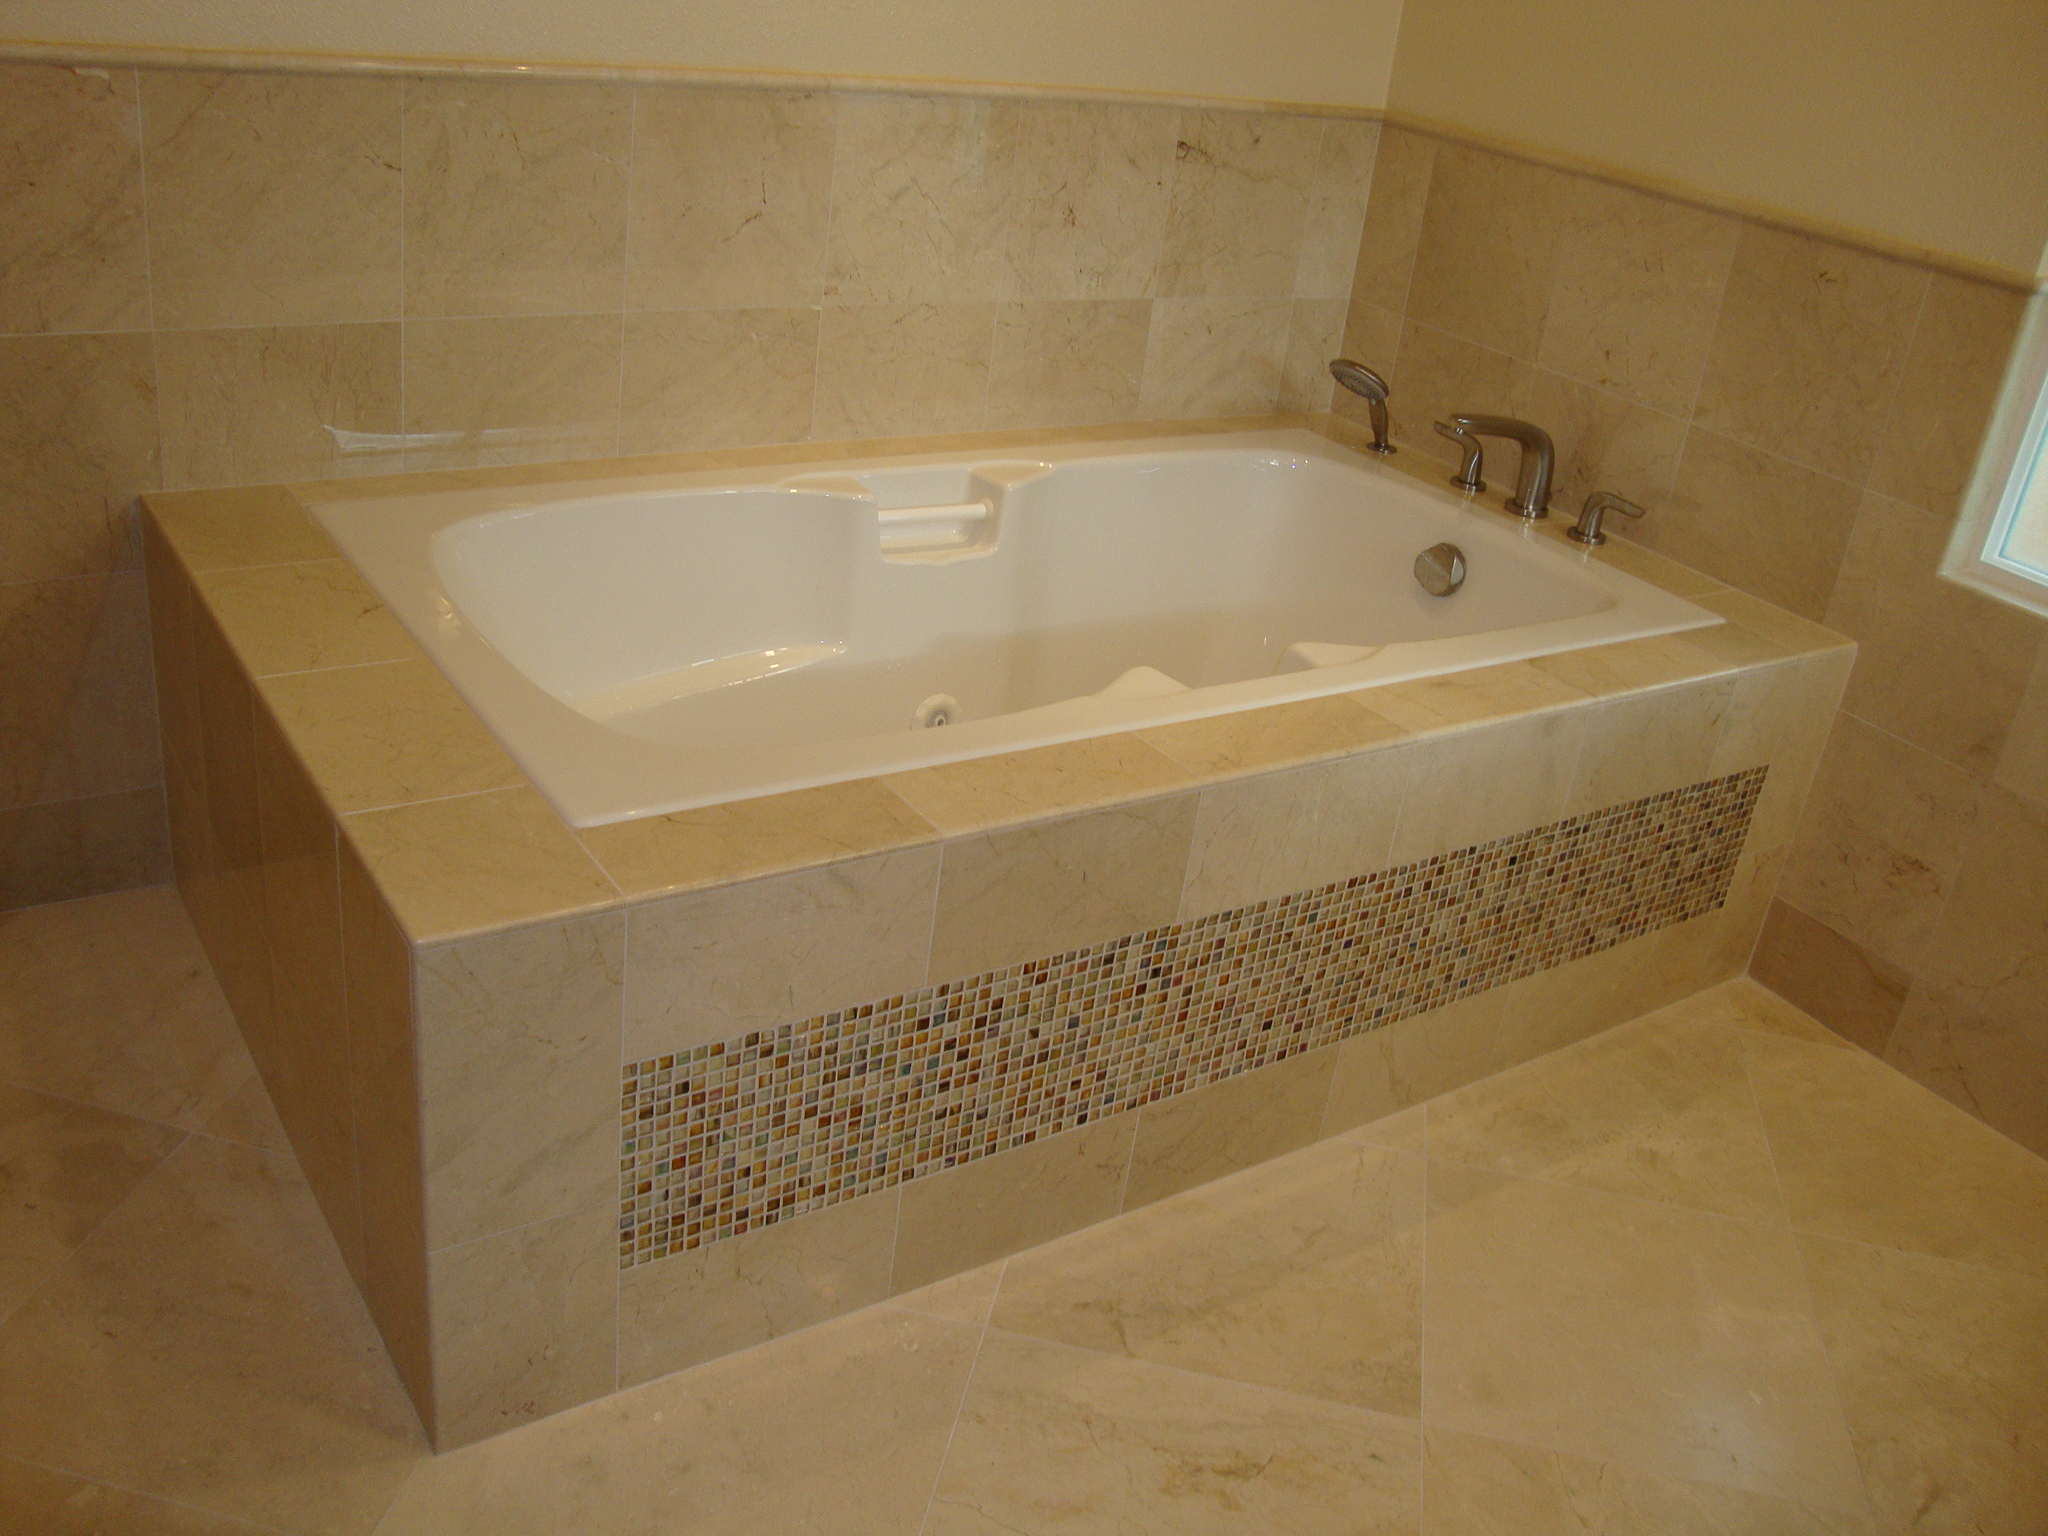 Bathtub Tile - Bathroom Tile | Westside Tile and Stone